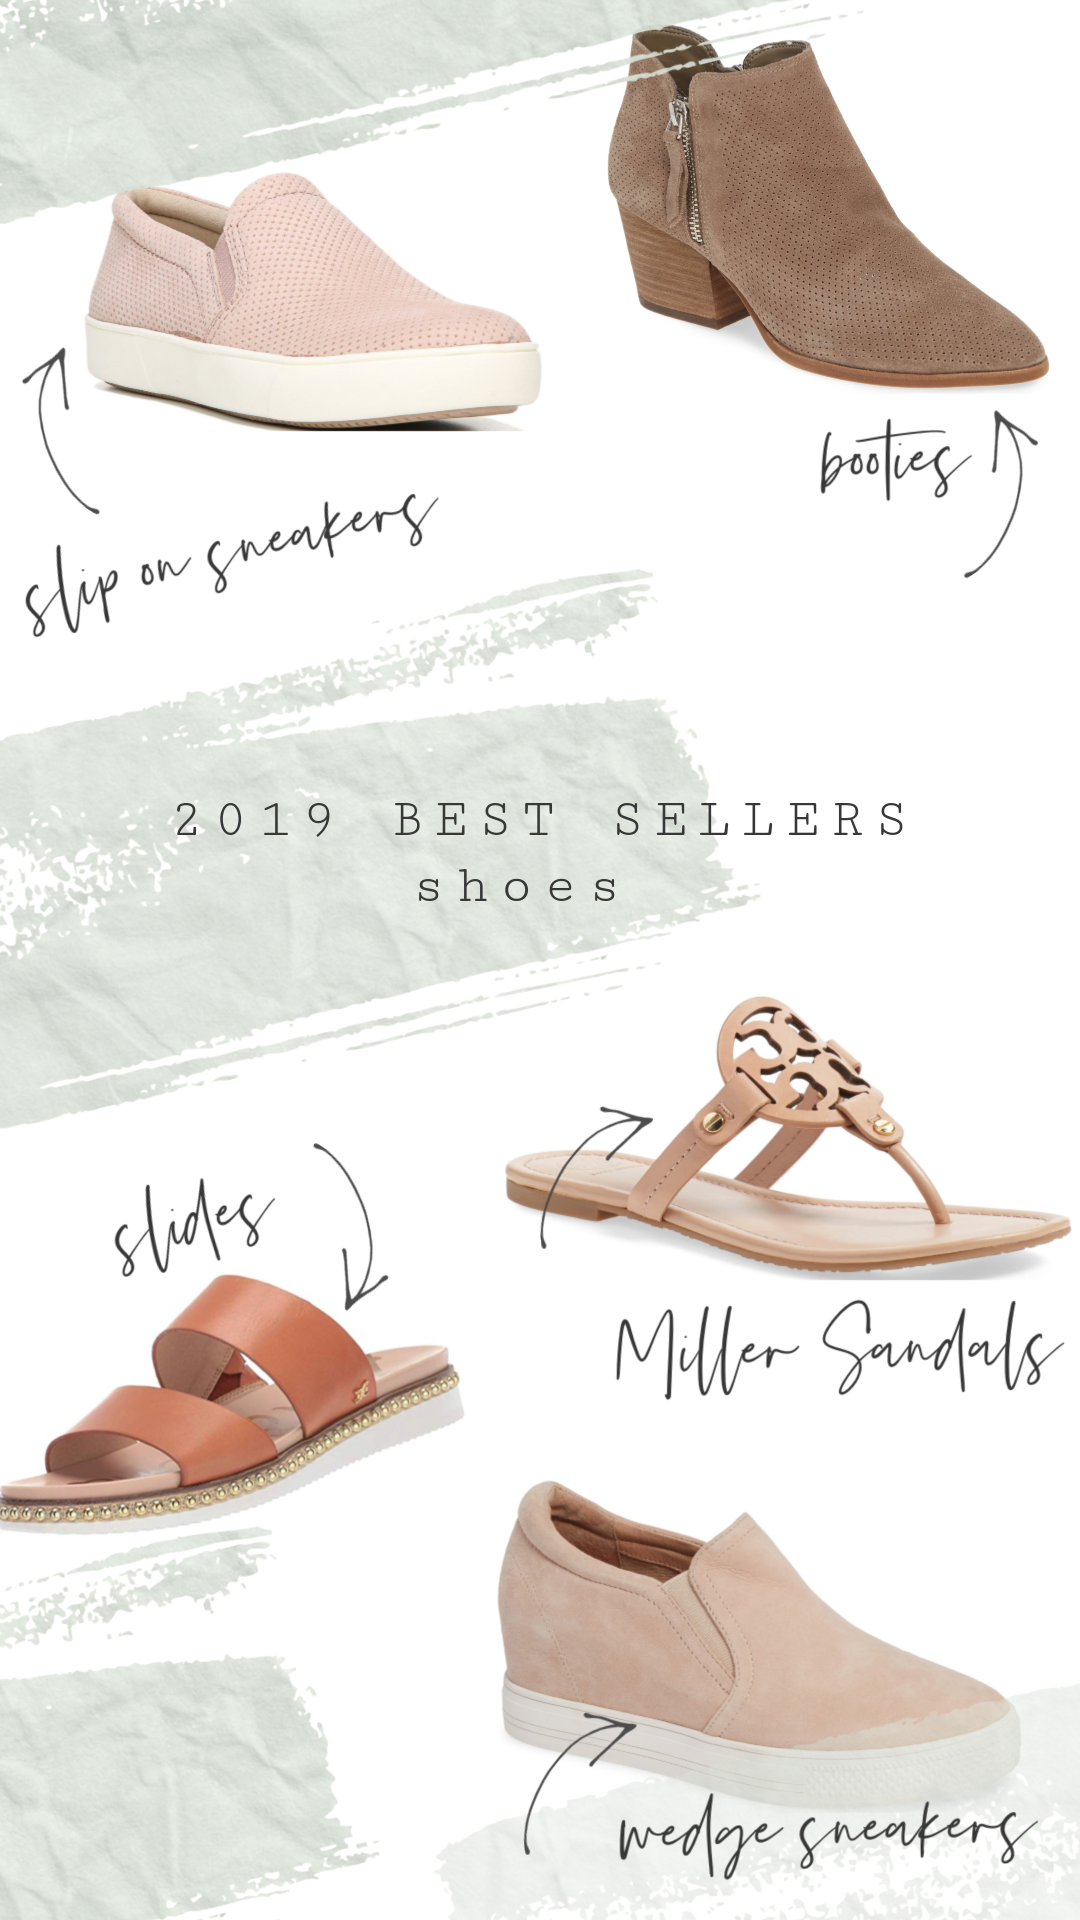 2019 Best Sellers Shoes